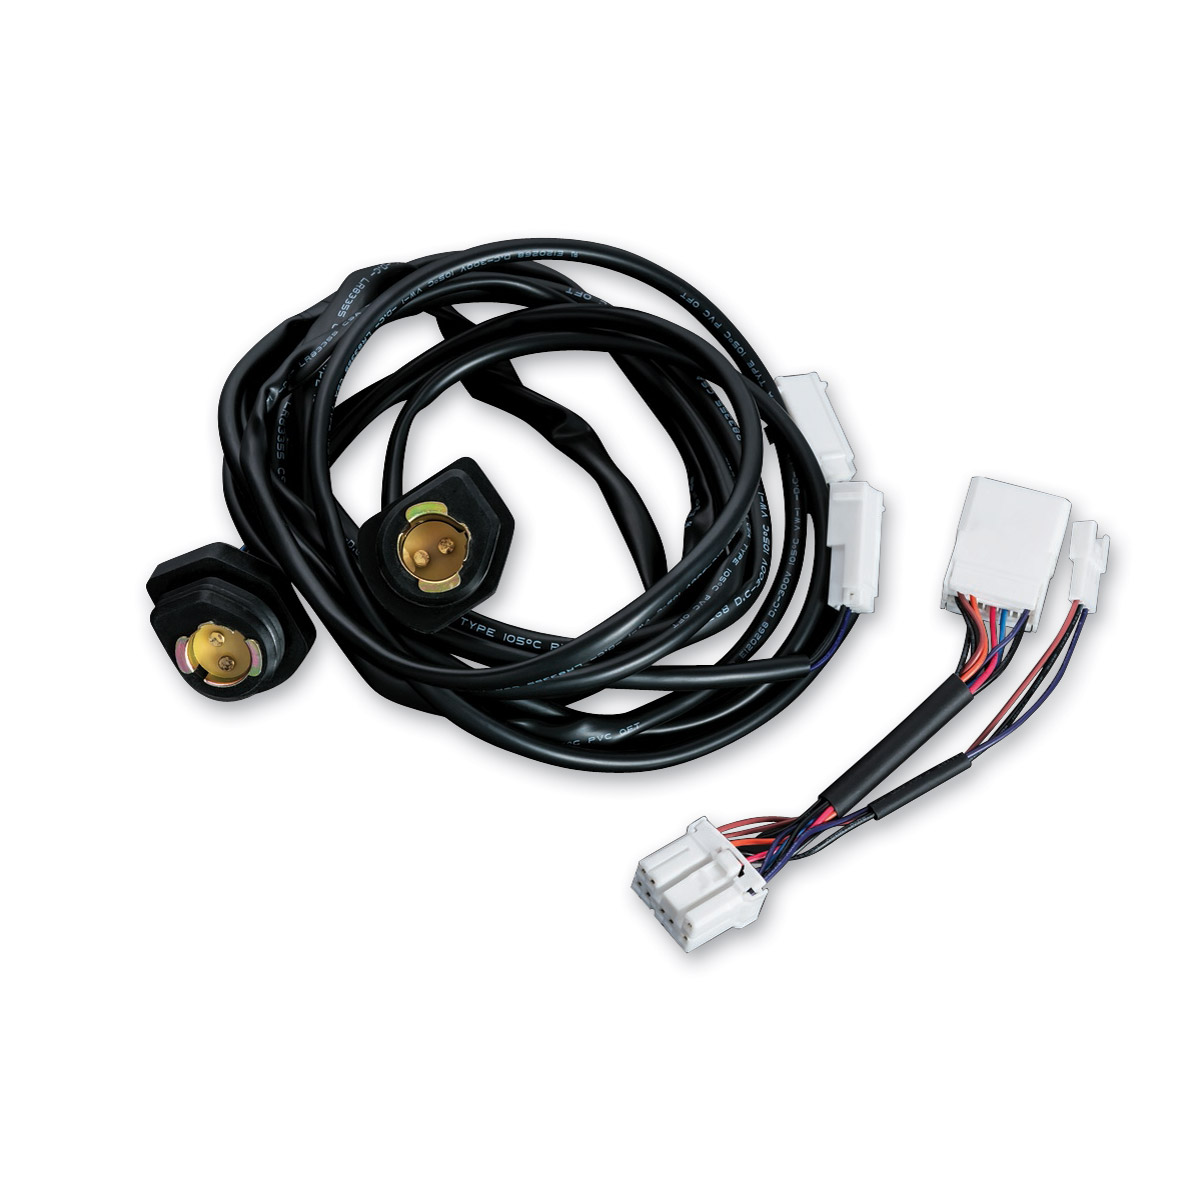 Kuryakyn Run-Turn-Brake Wiring Harness for Tour-Pak